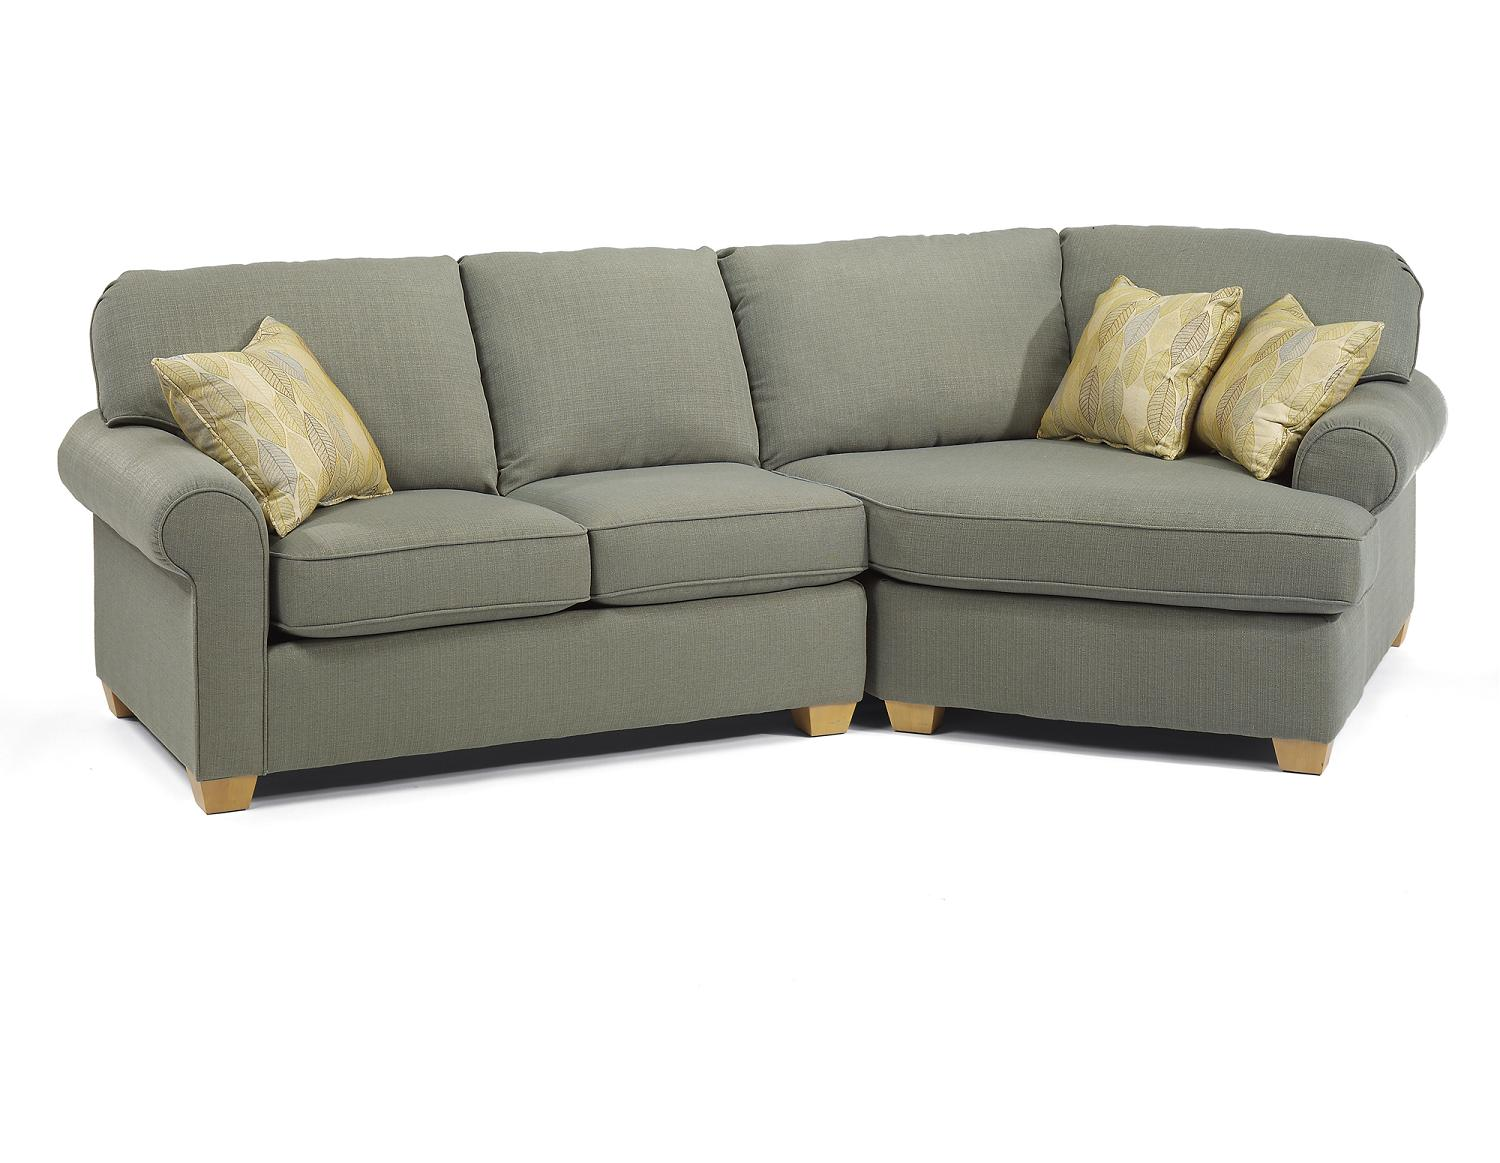 cheap sectional sofas under 100 couch sofa ideas